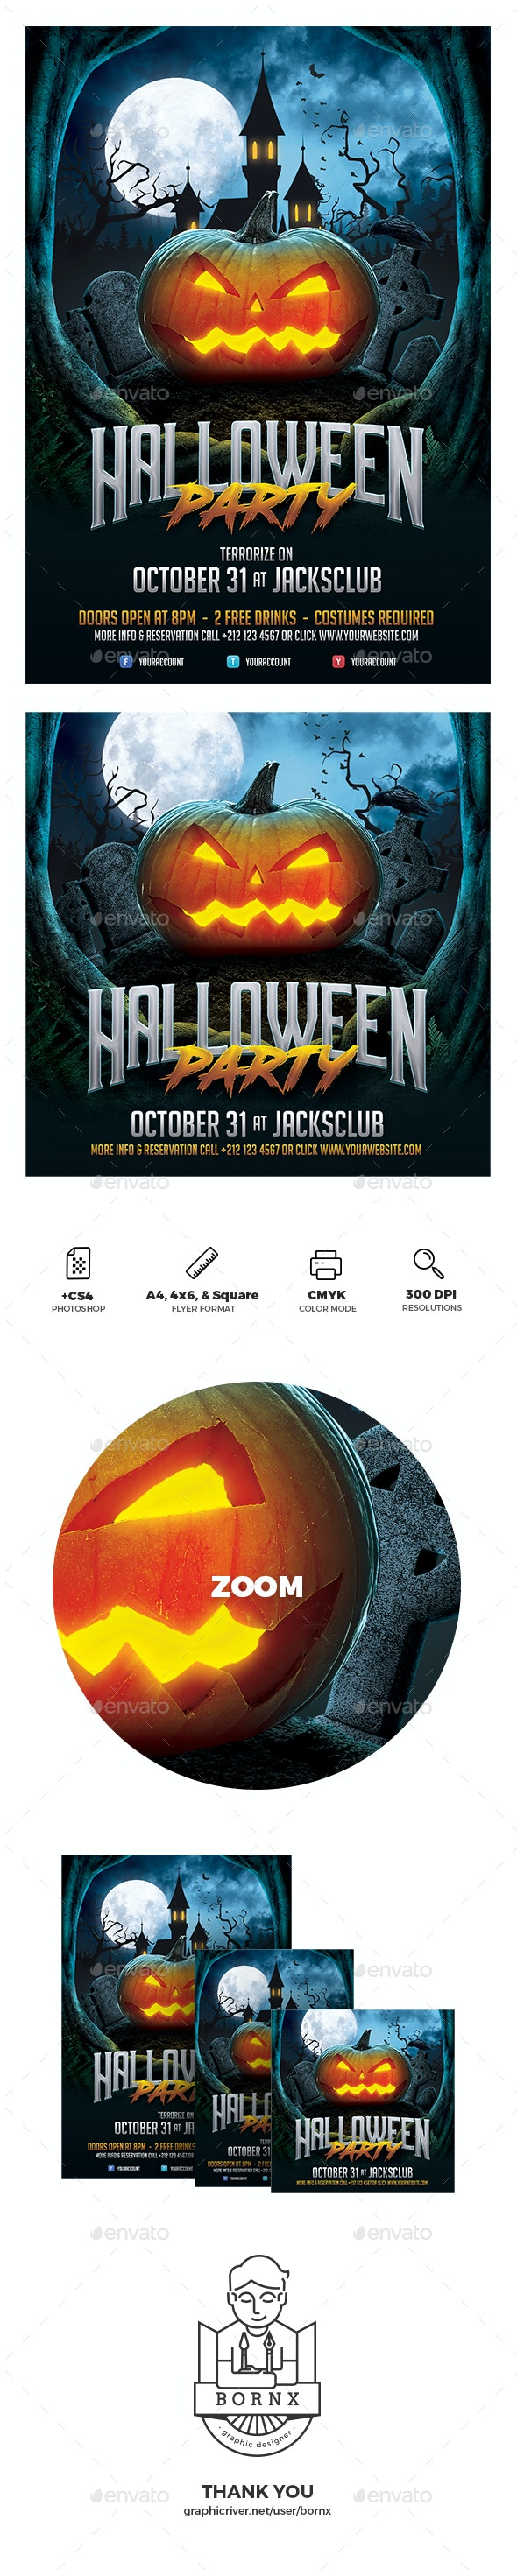 Halloween Flyer Template - Holidays Events